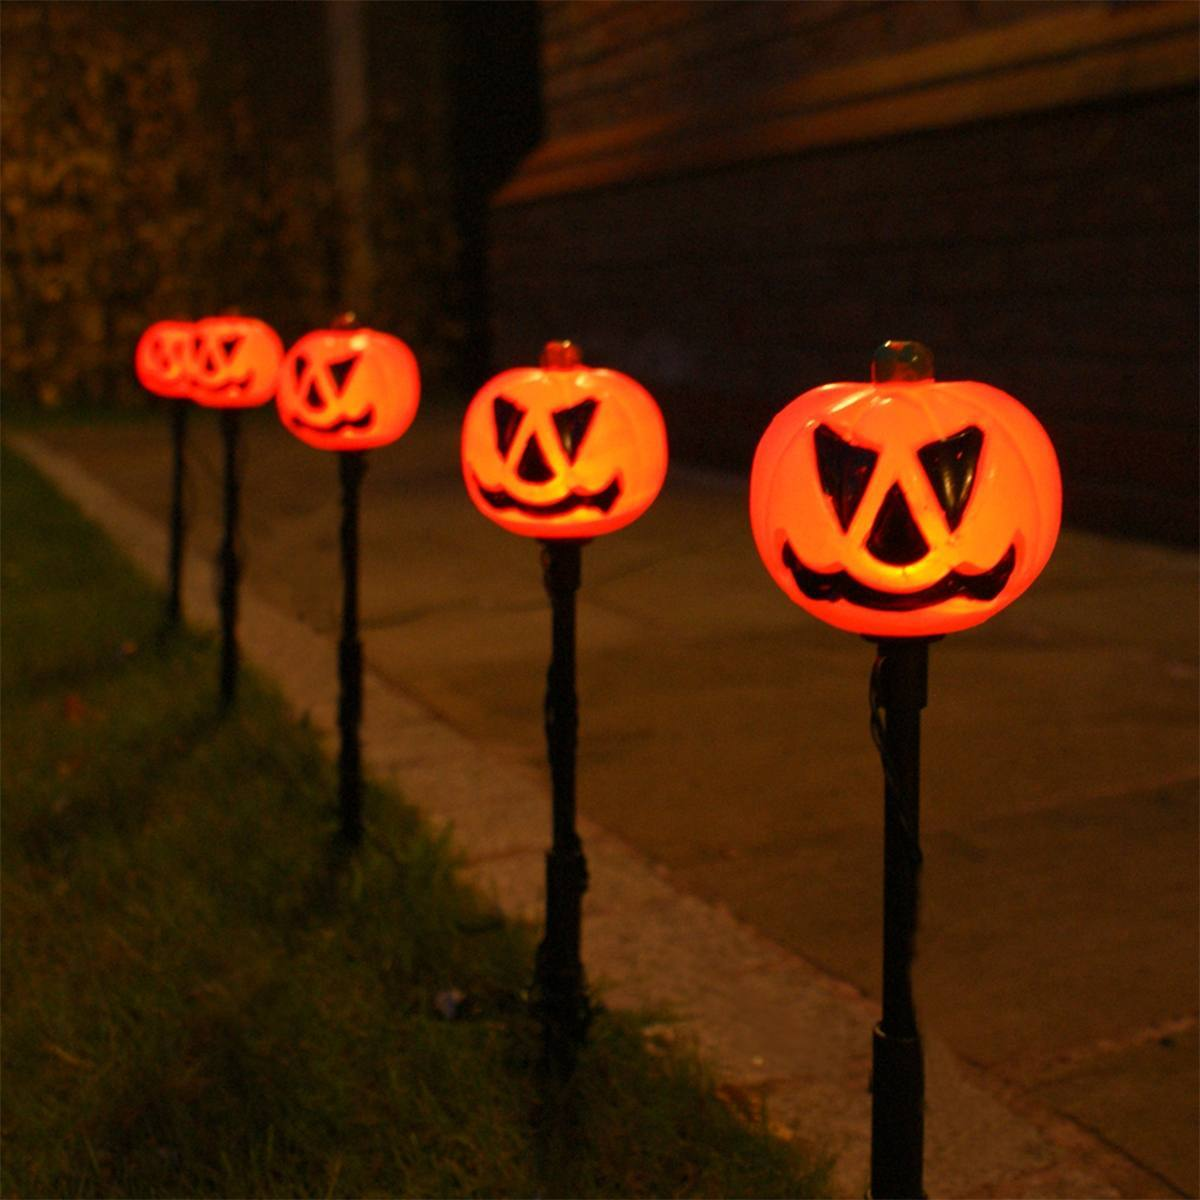 Outdoor Plug In Halloween Pumpkin Stake Lights, 5 Pack